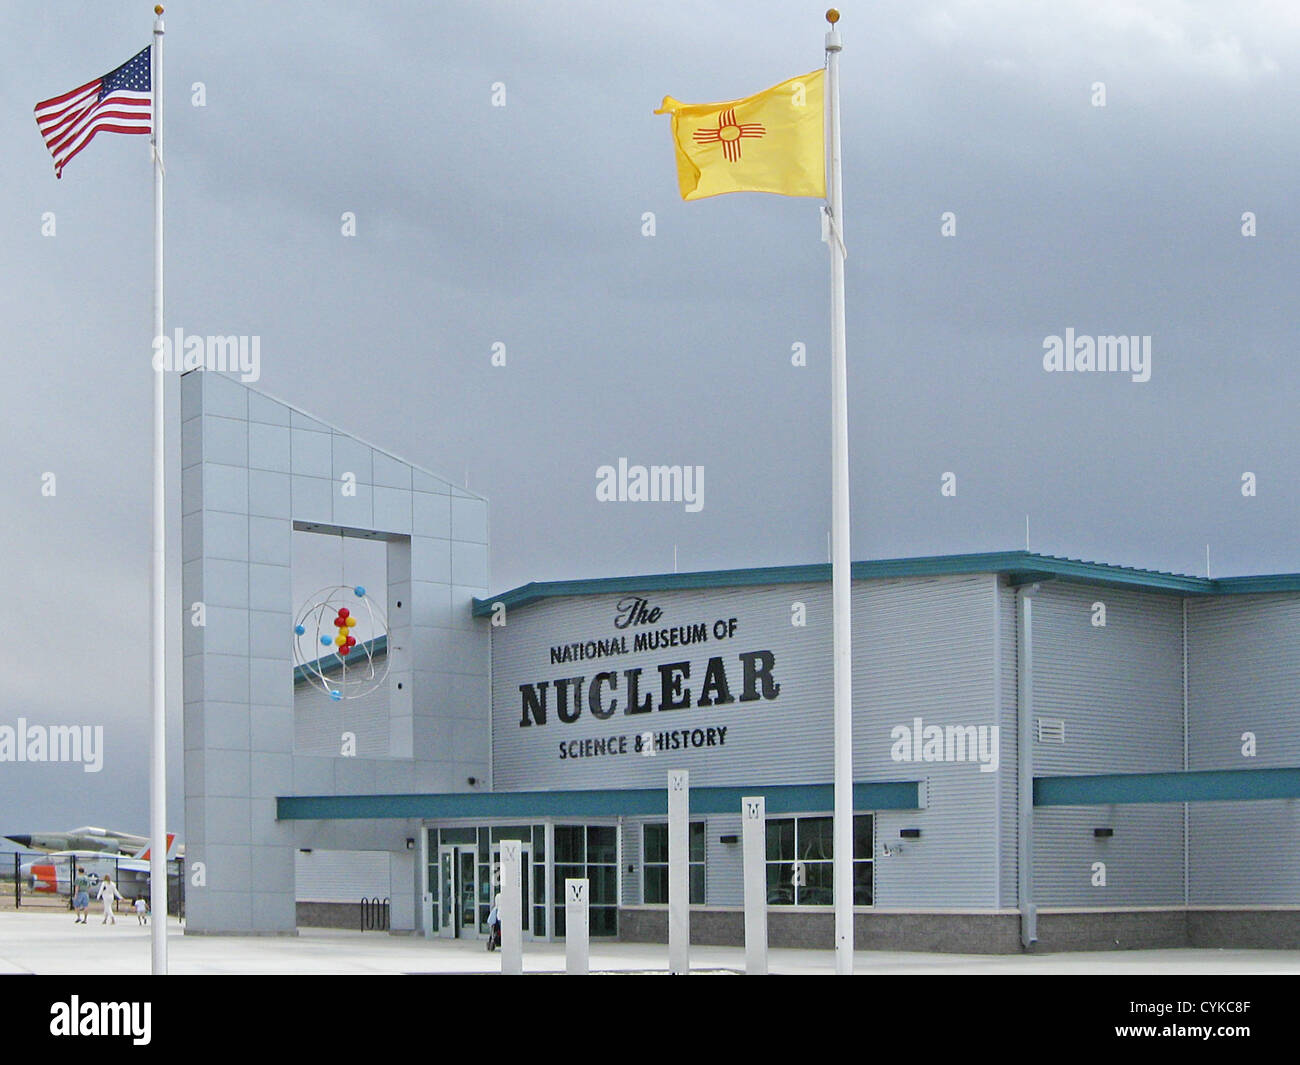 National Museum of Nuclear Science and History, located at 601 Eubank Boulevard SE in Albuquerque, New Mexico - Stock Image